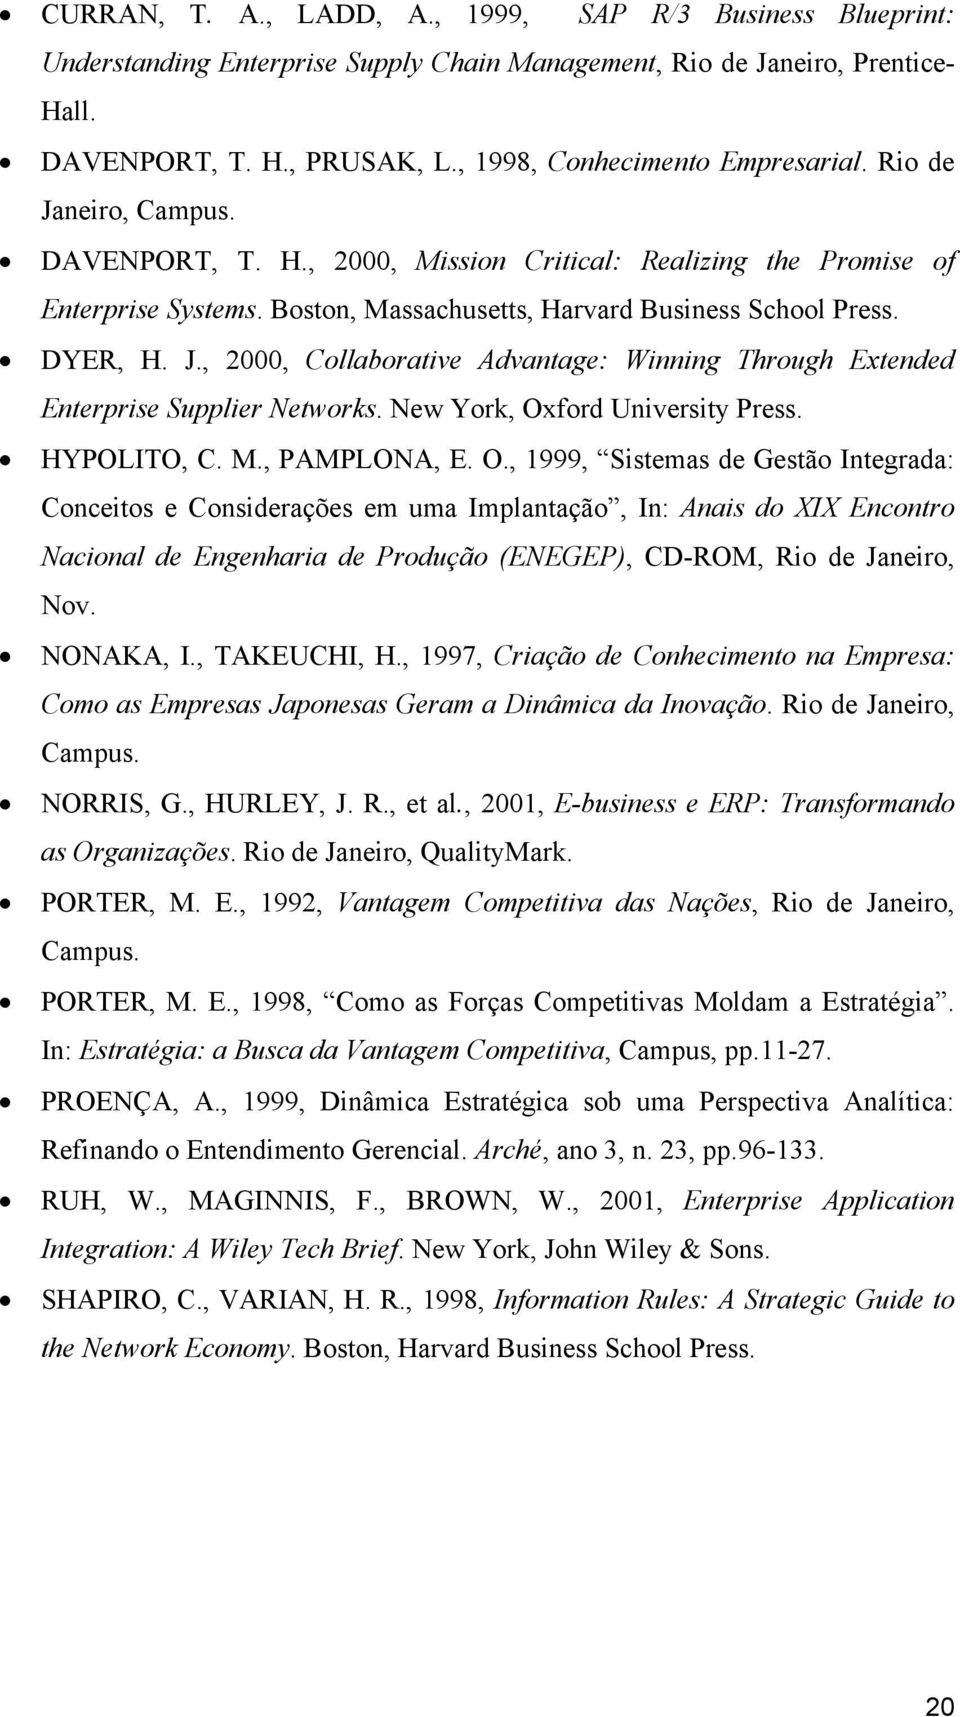 DYER, H. J., 2000, Collaborative Advantage: Winning Through Extended Enterprise Supplier Networks. New York, Ox